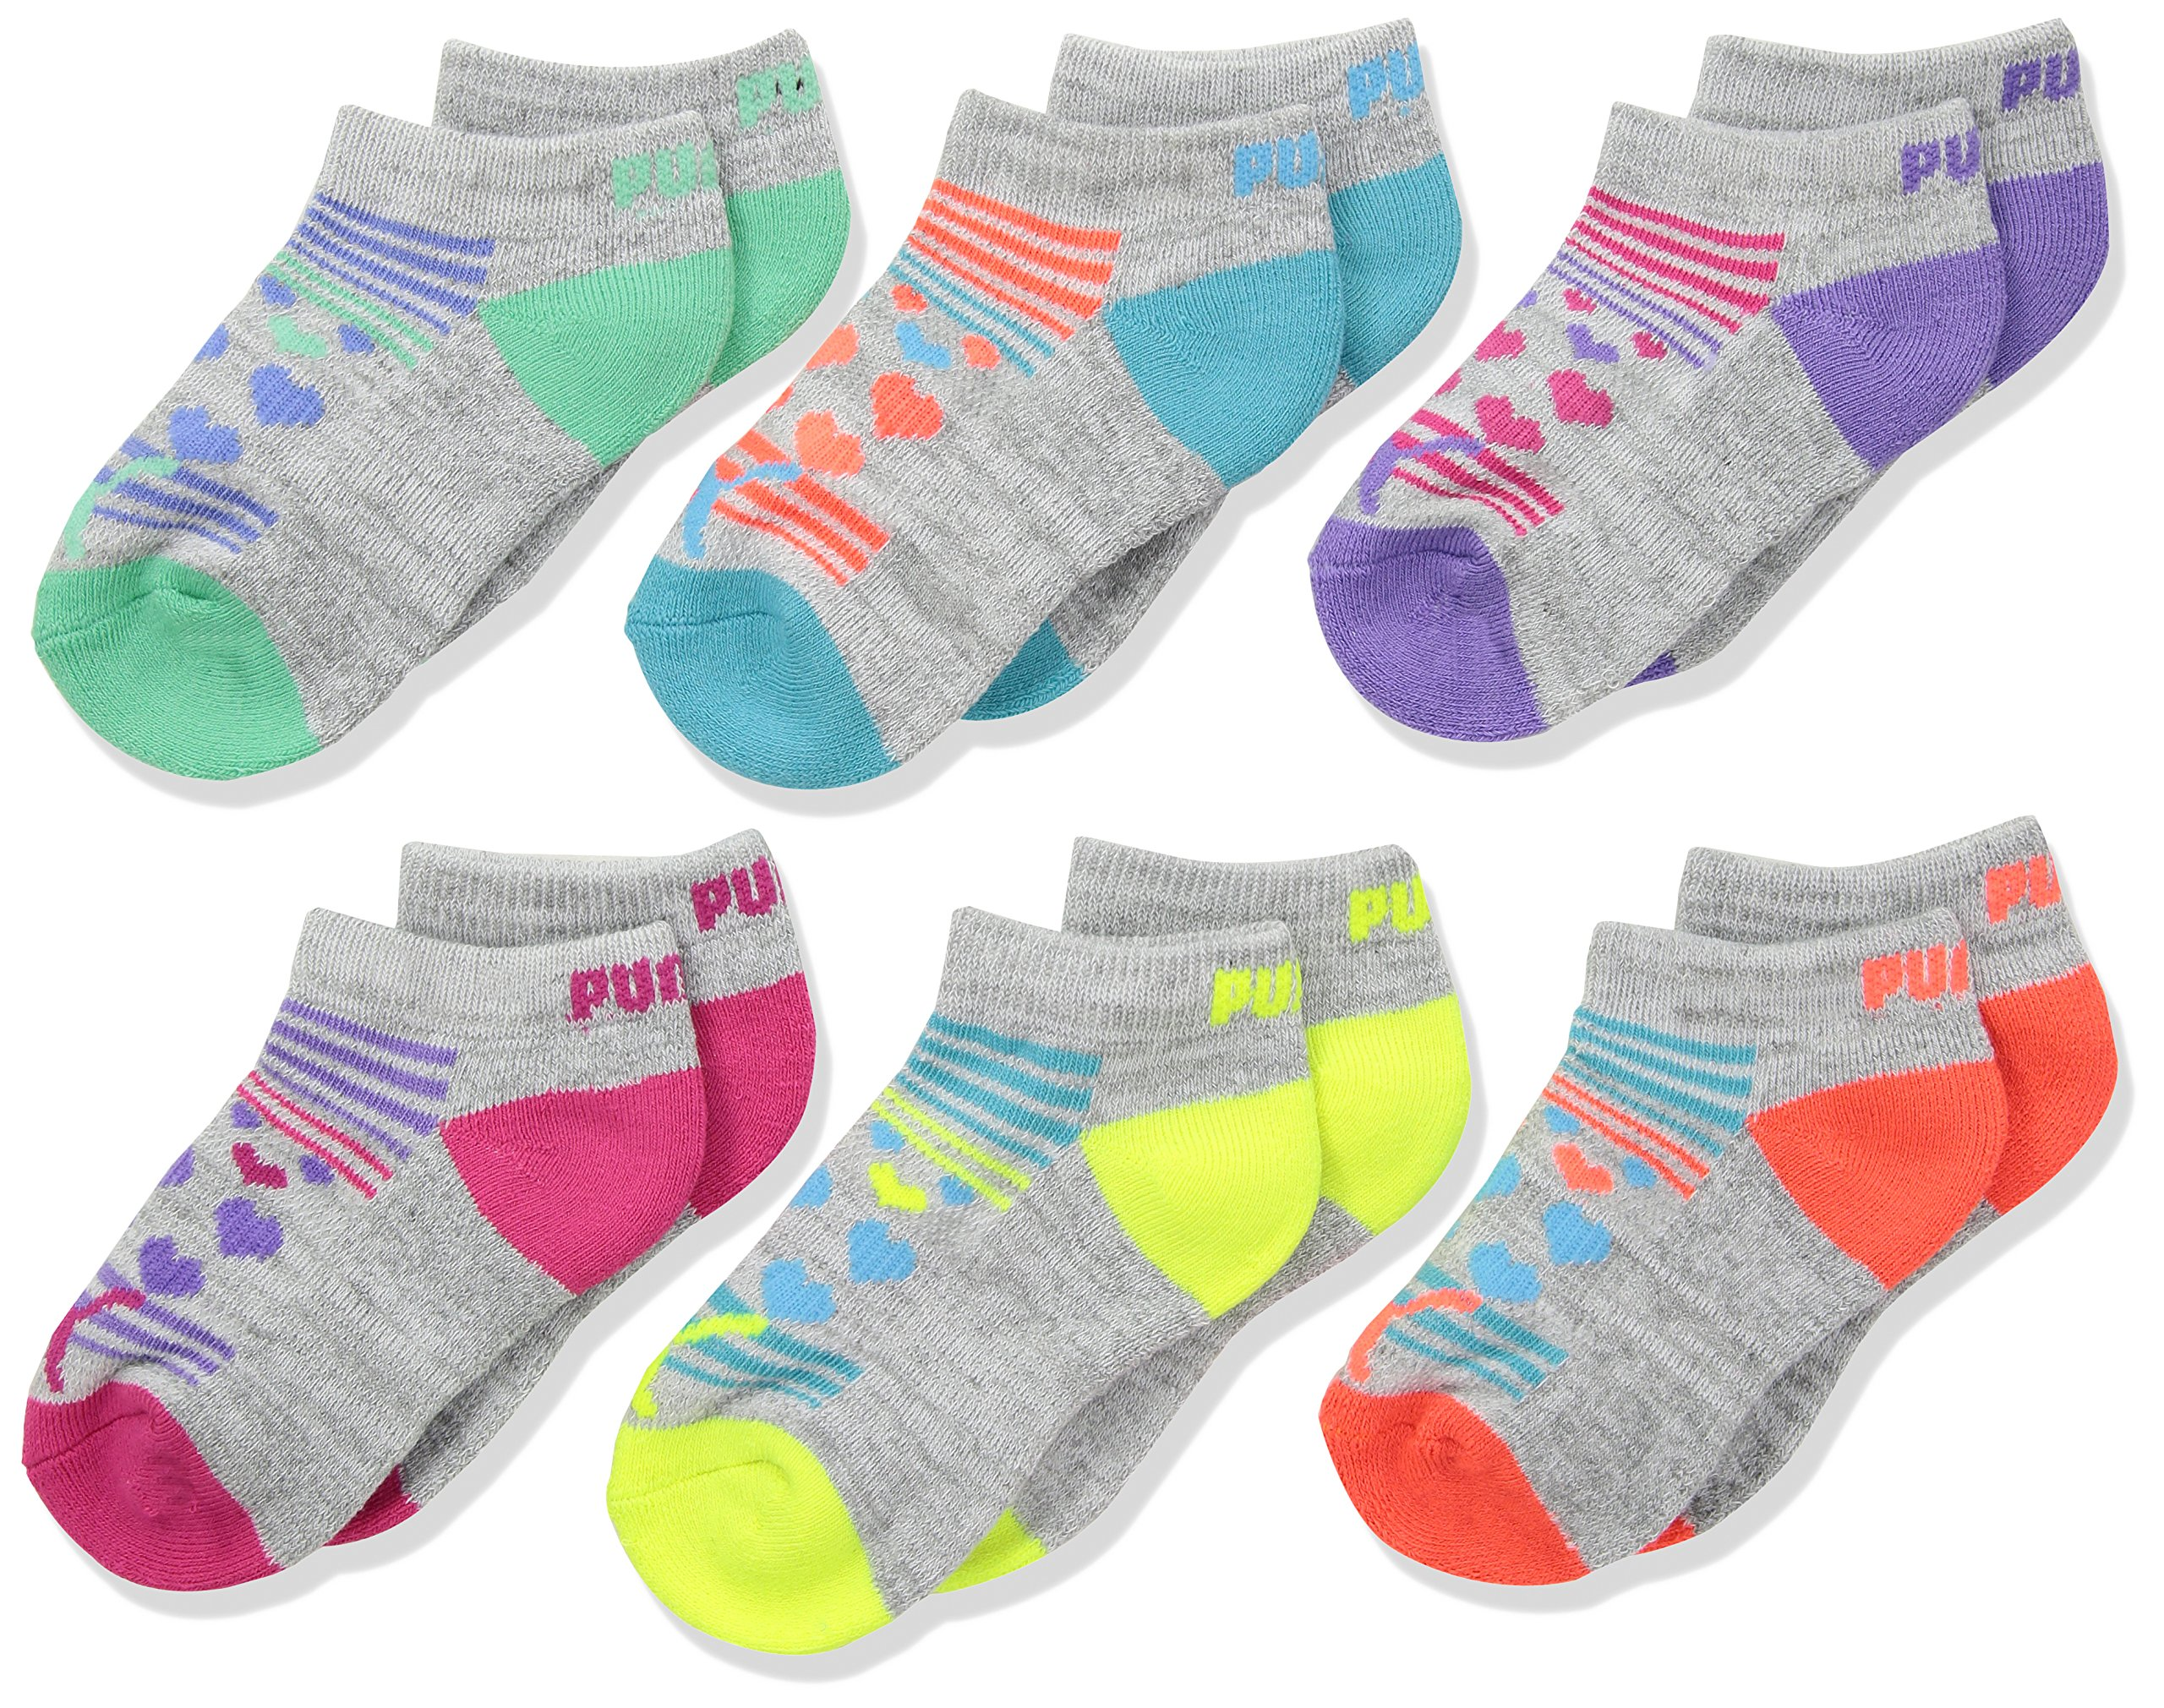 PUMA Big Girls' 6 Pack Low Cut Socks, Grey/Pink, 9-11 by PUMA